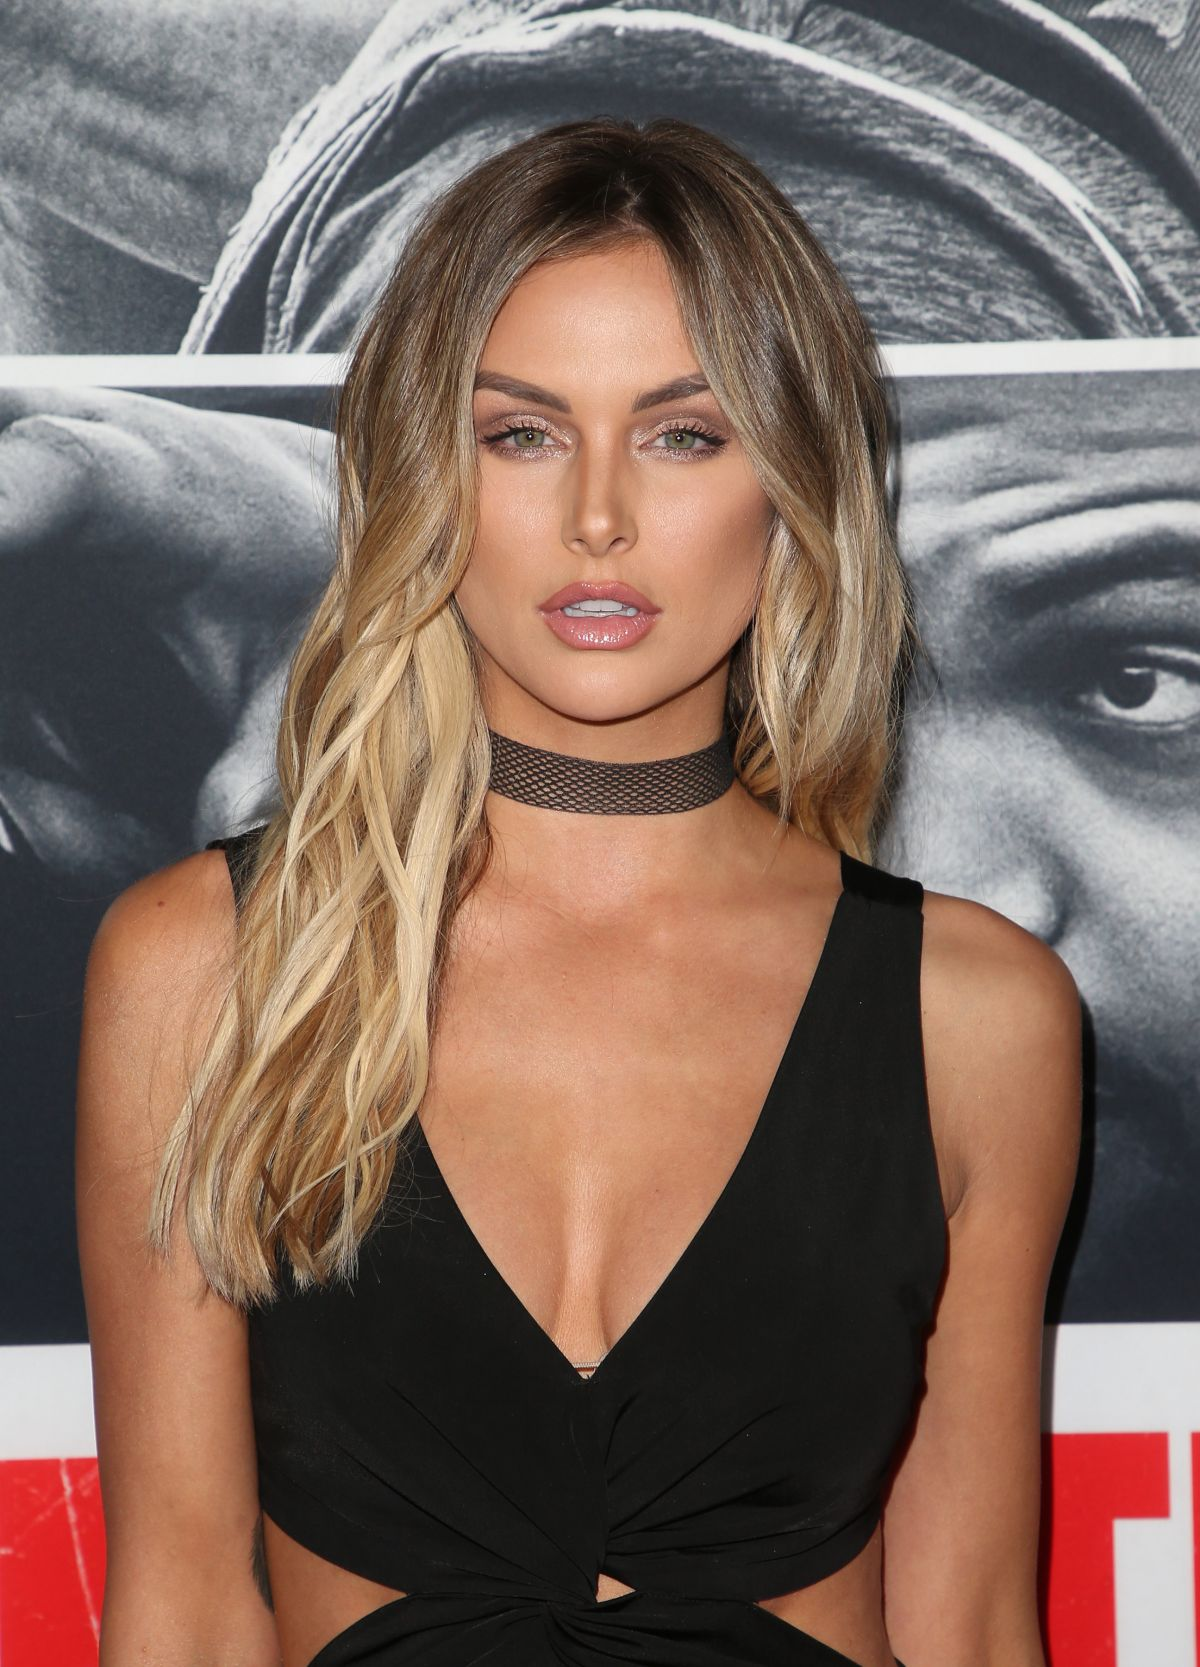 Lala Kent At 'Den of Thieves' film premiere in Los Angeles